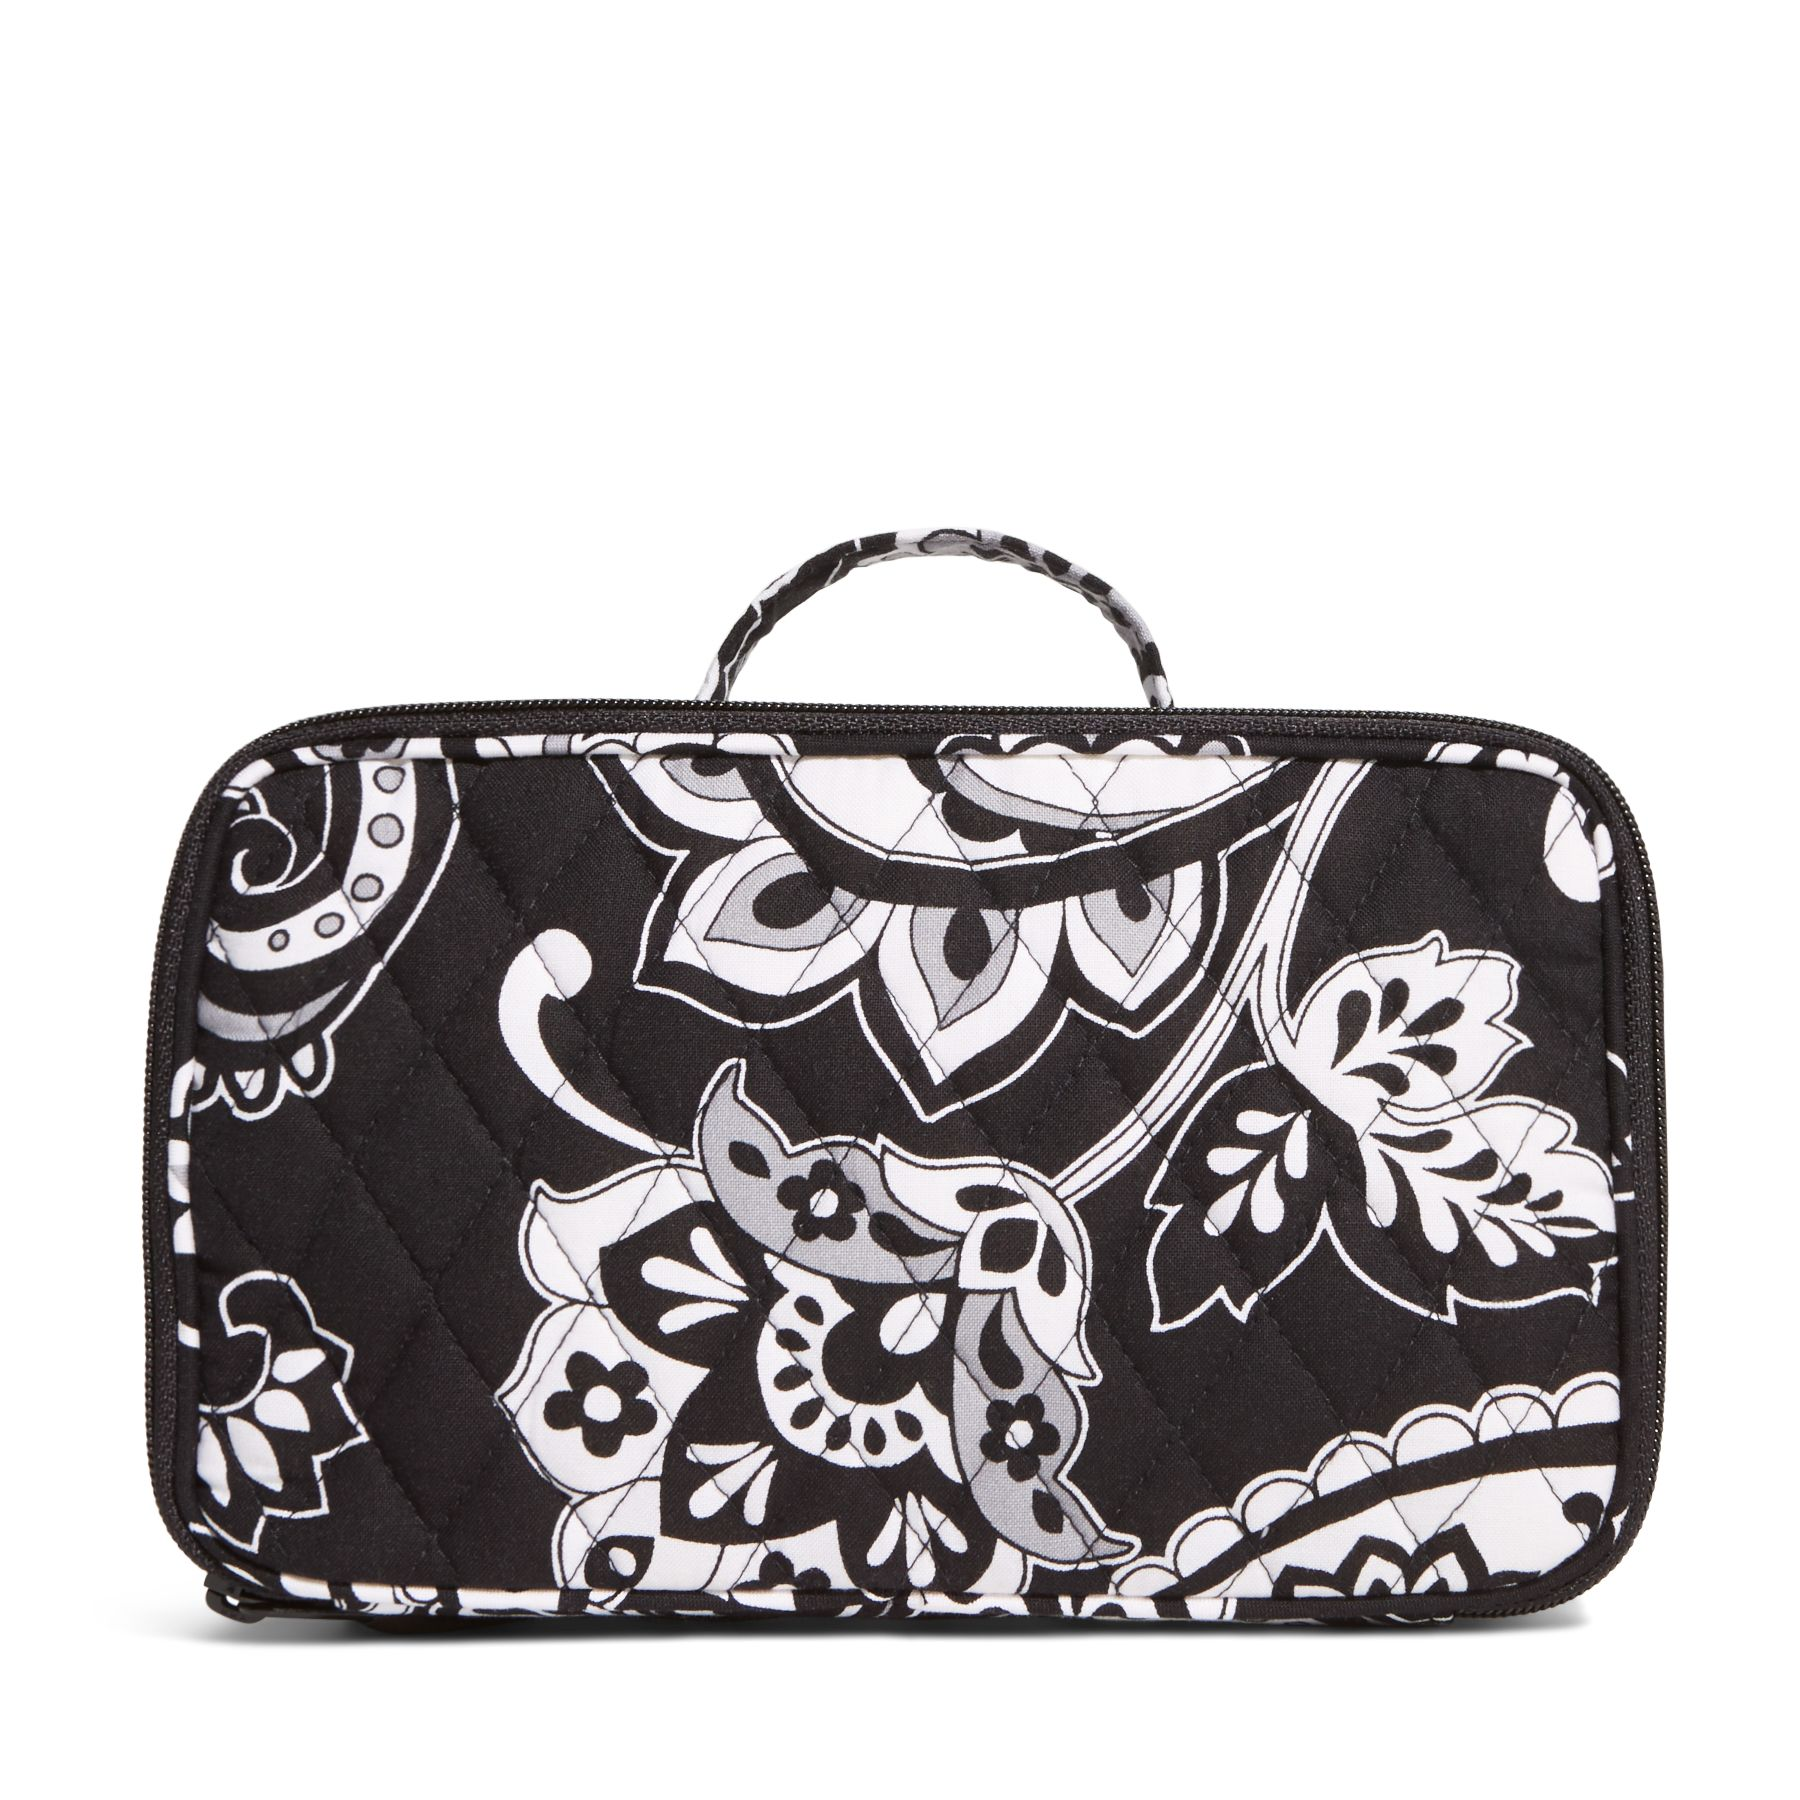 Vera Bradley Blush and Brush Makeup Case in Midnight Paisley